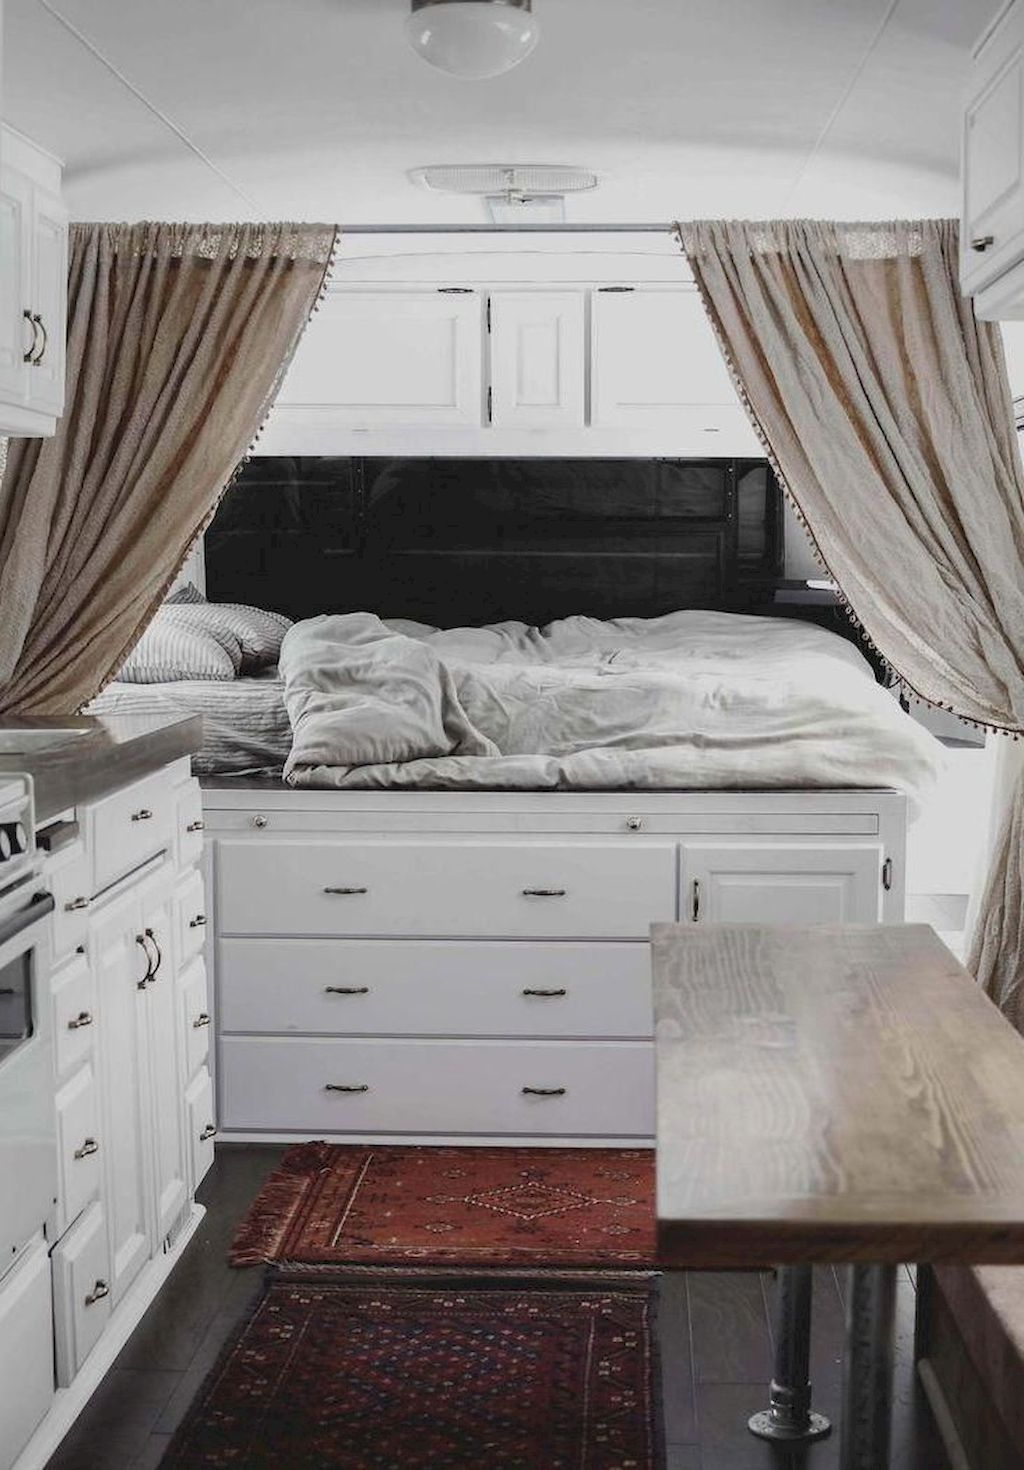 Camper Trailer Inside Design Concepts For You With Images Rv Decorating Ideas Rv Interior Theme Room Decor Travel Themed Bedroom